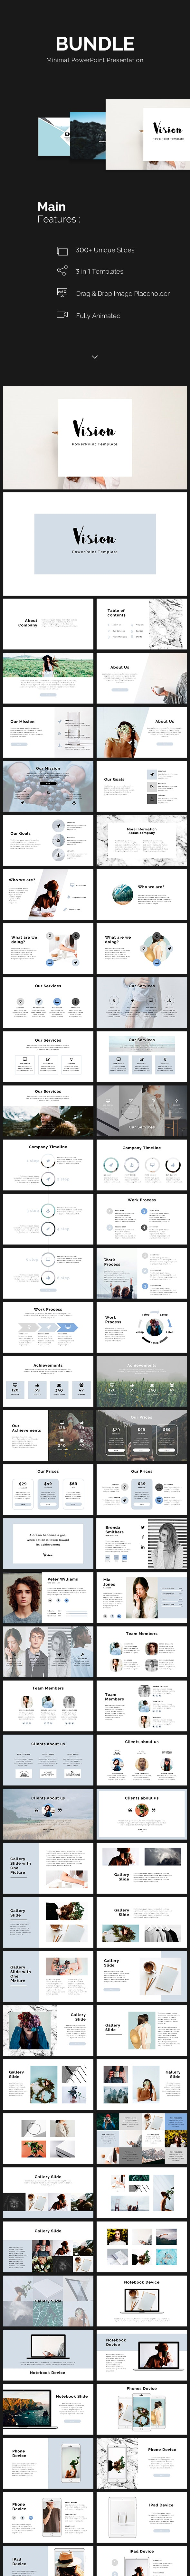 Bundle Minimal PowerPoint Template 3 in 1 - PowerPoint Templates Presentation Templates